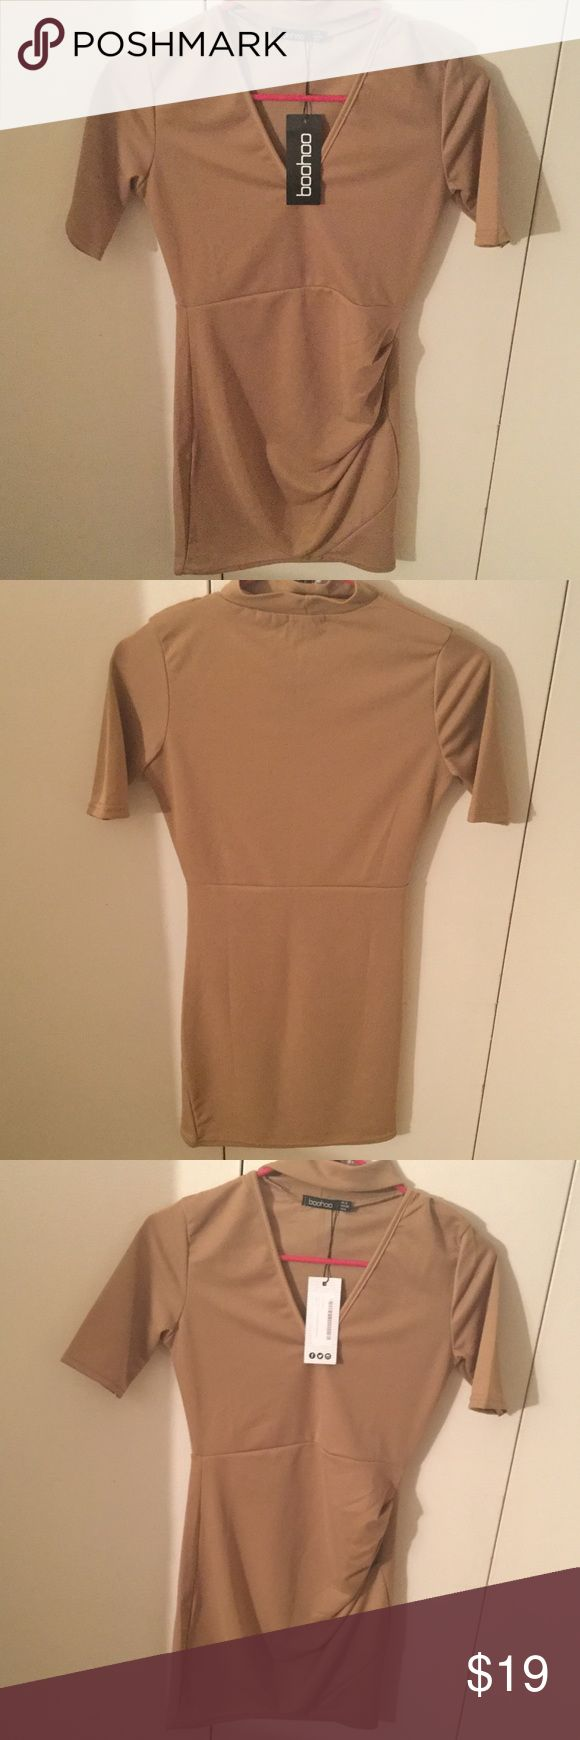 New BooHoo Petite dress size US 4 fits like an xs New with Tags Petite BooHoo Dress color Camel size US 4 UK 8 fits like an extra small. Perfect mini party dress for a Petite girl. I weight 105 Ibs and I'm 5 feet Boohoo Petite Dresses Mini